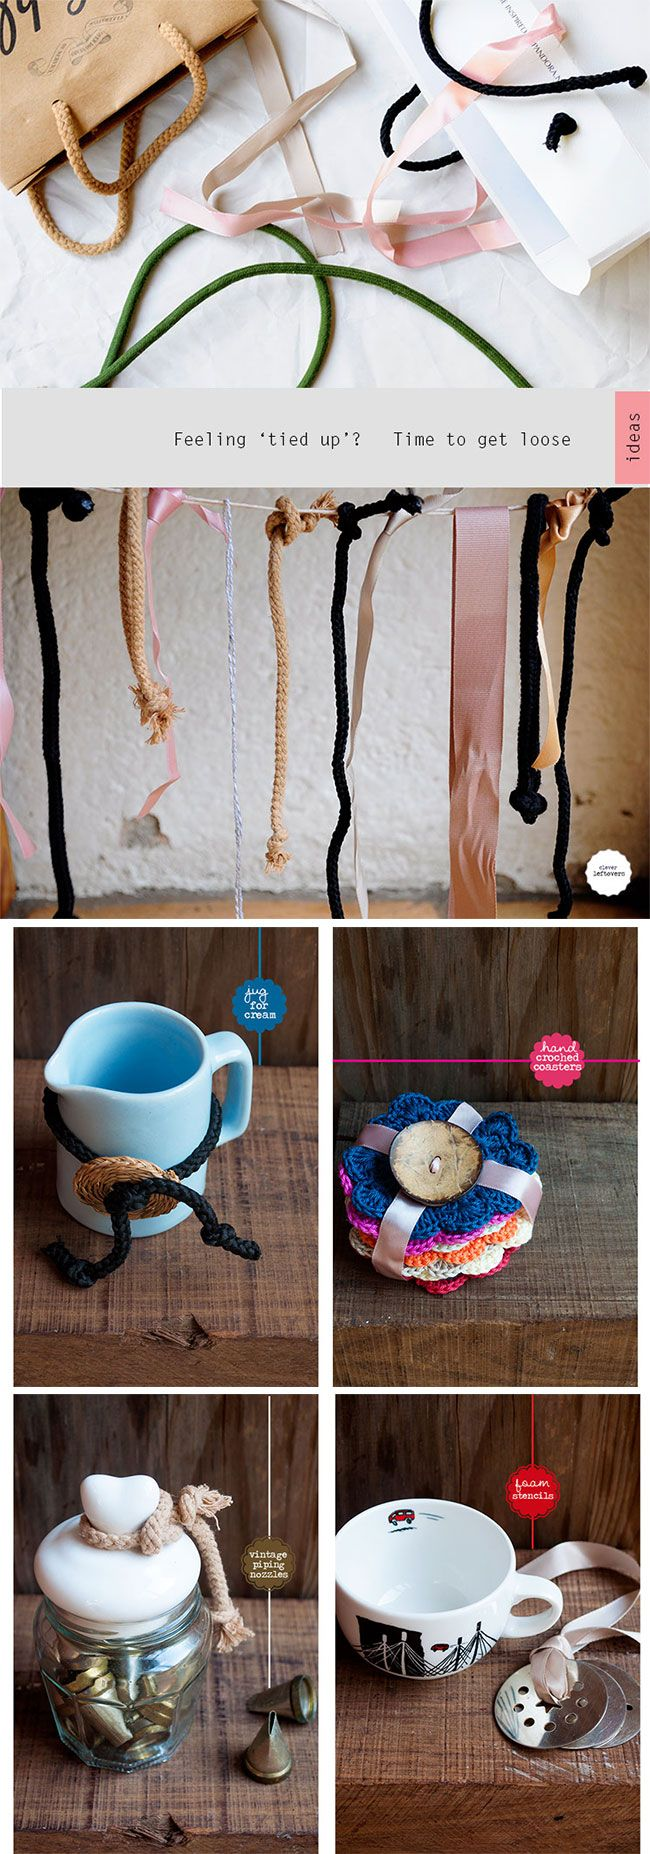 Using clever re-cycling tricks to glam up gifts! Try it!